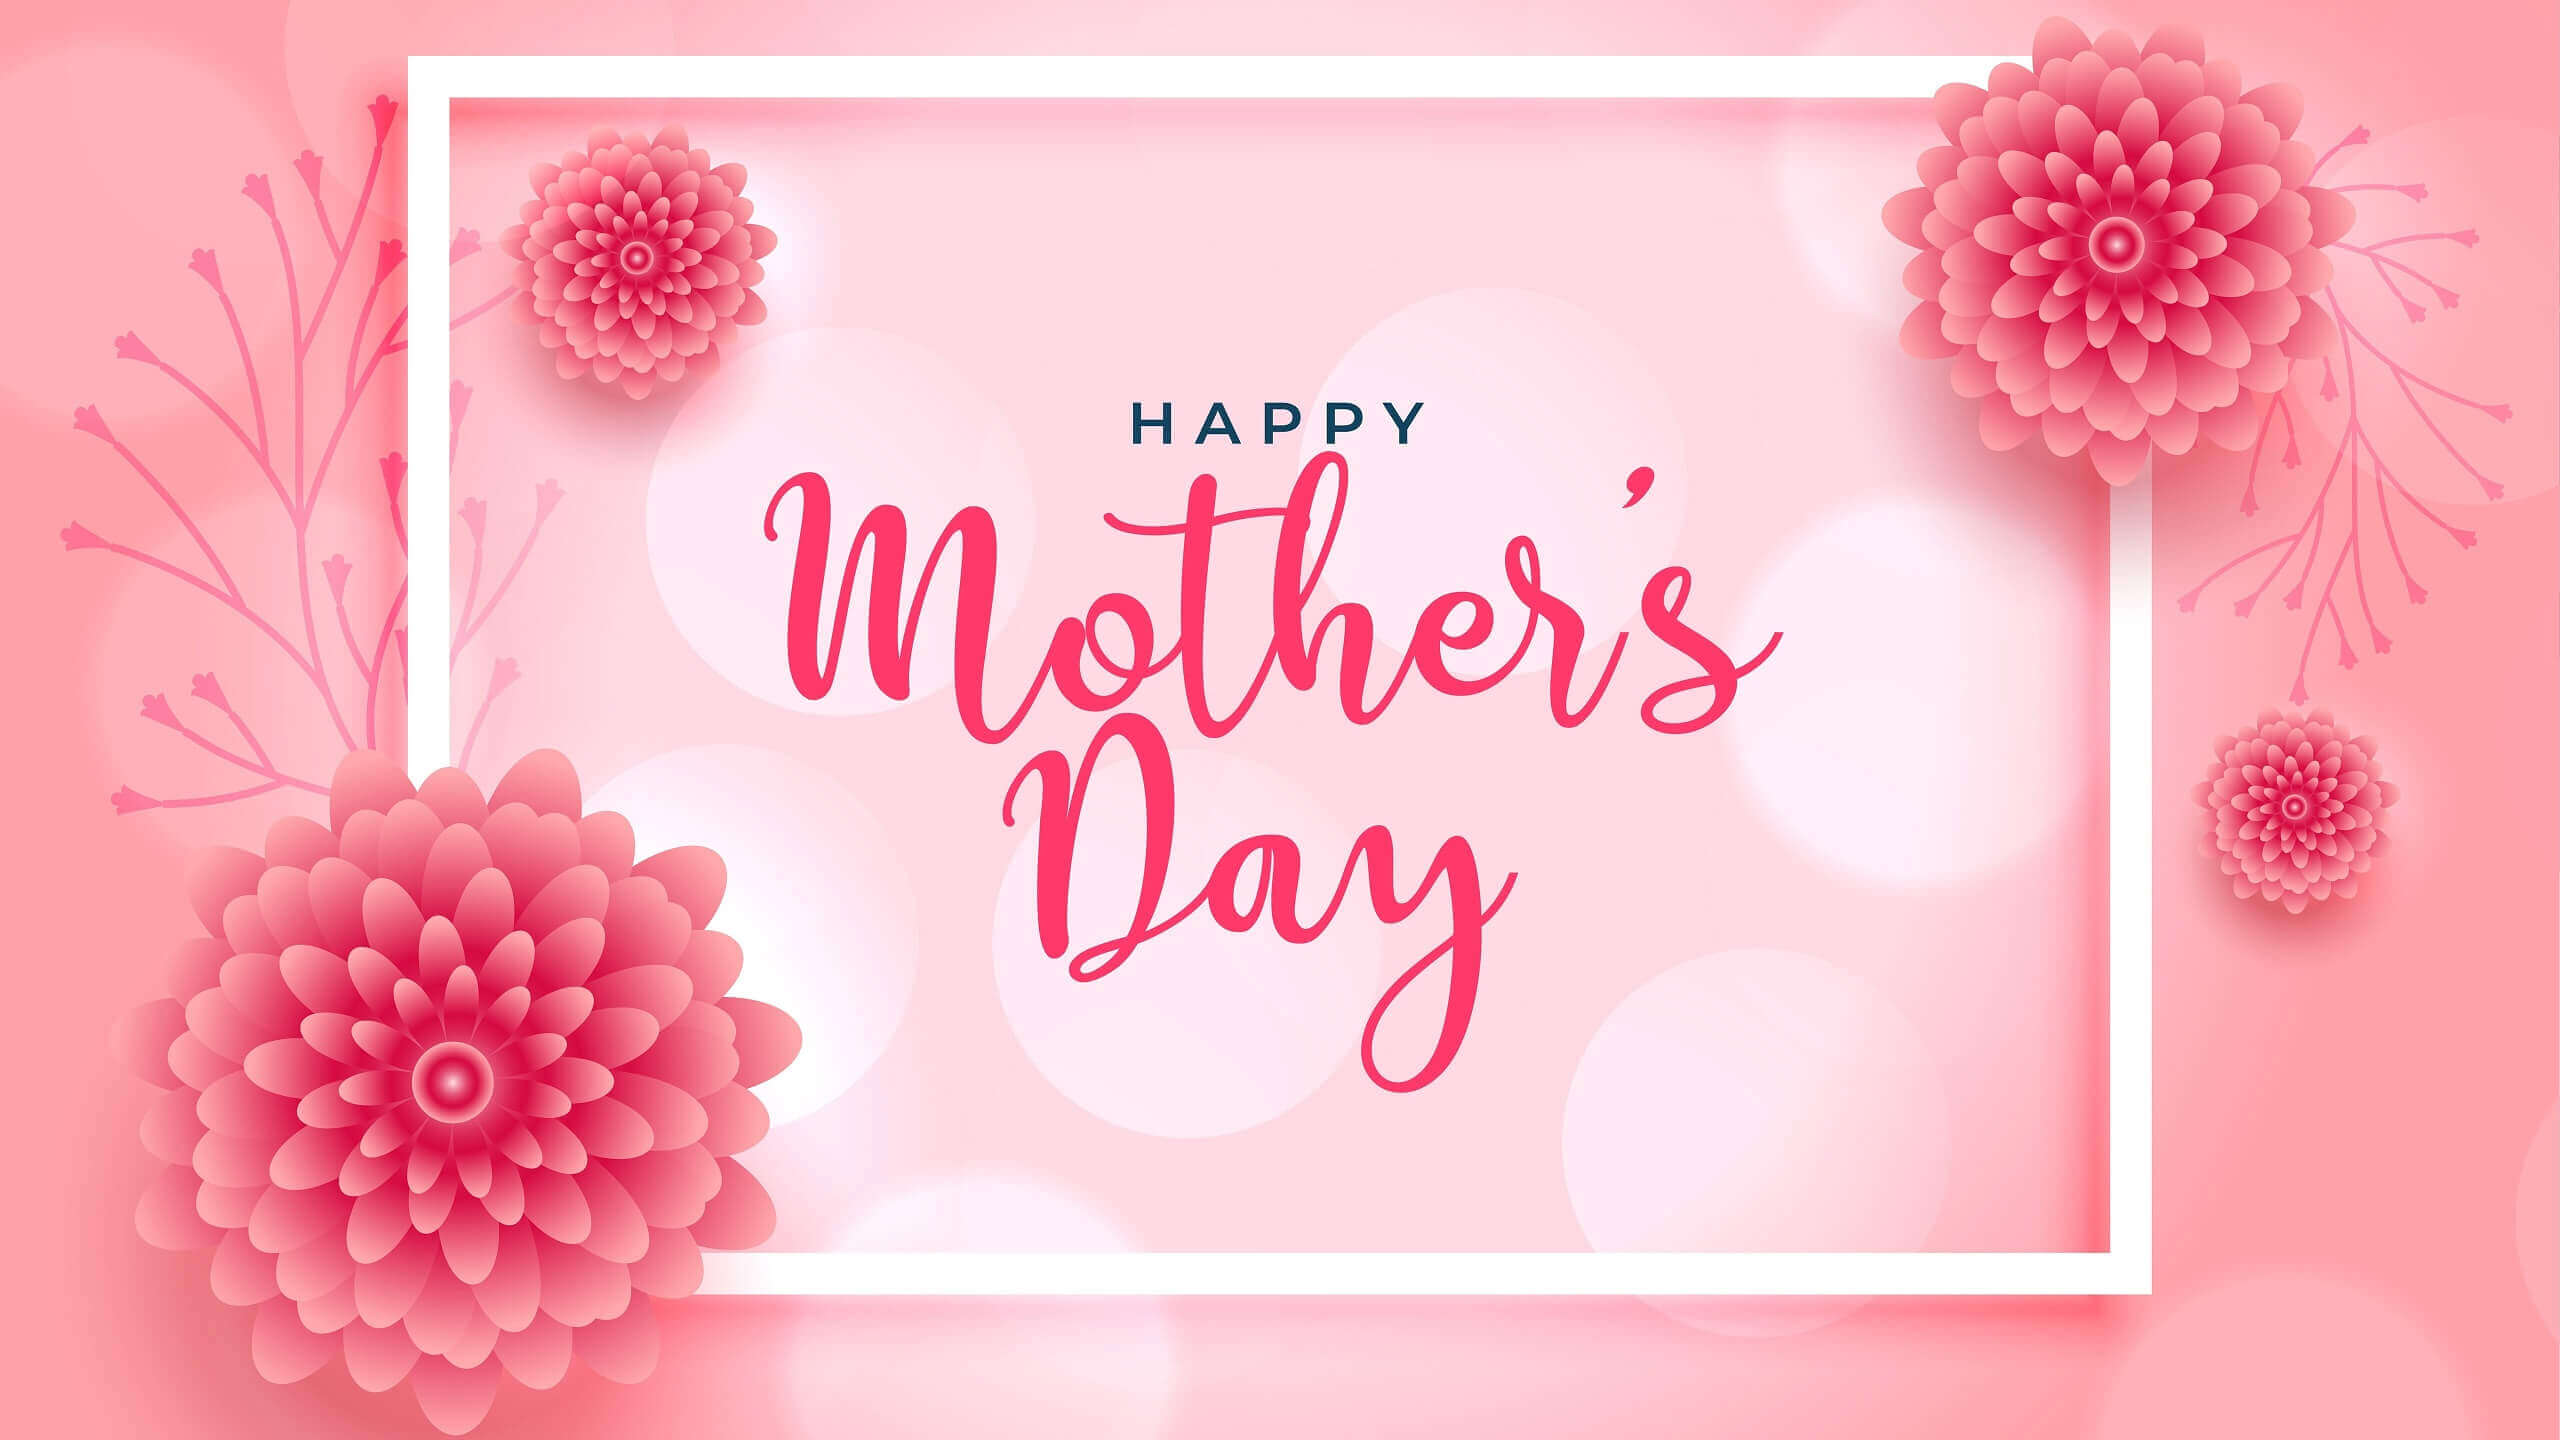 Beautiful Pics for Happy Mothers Day